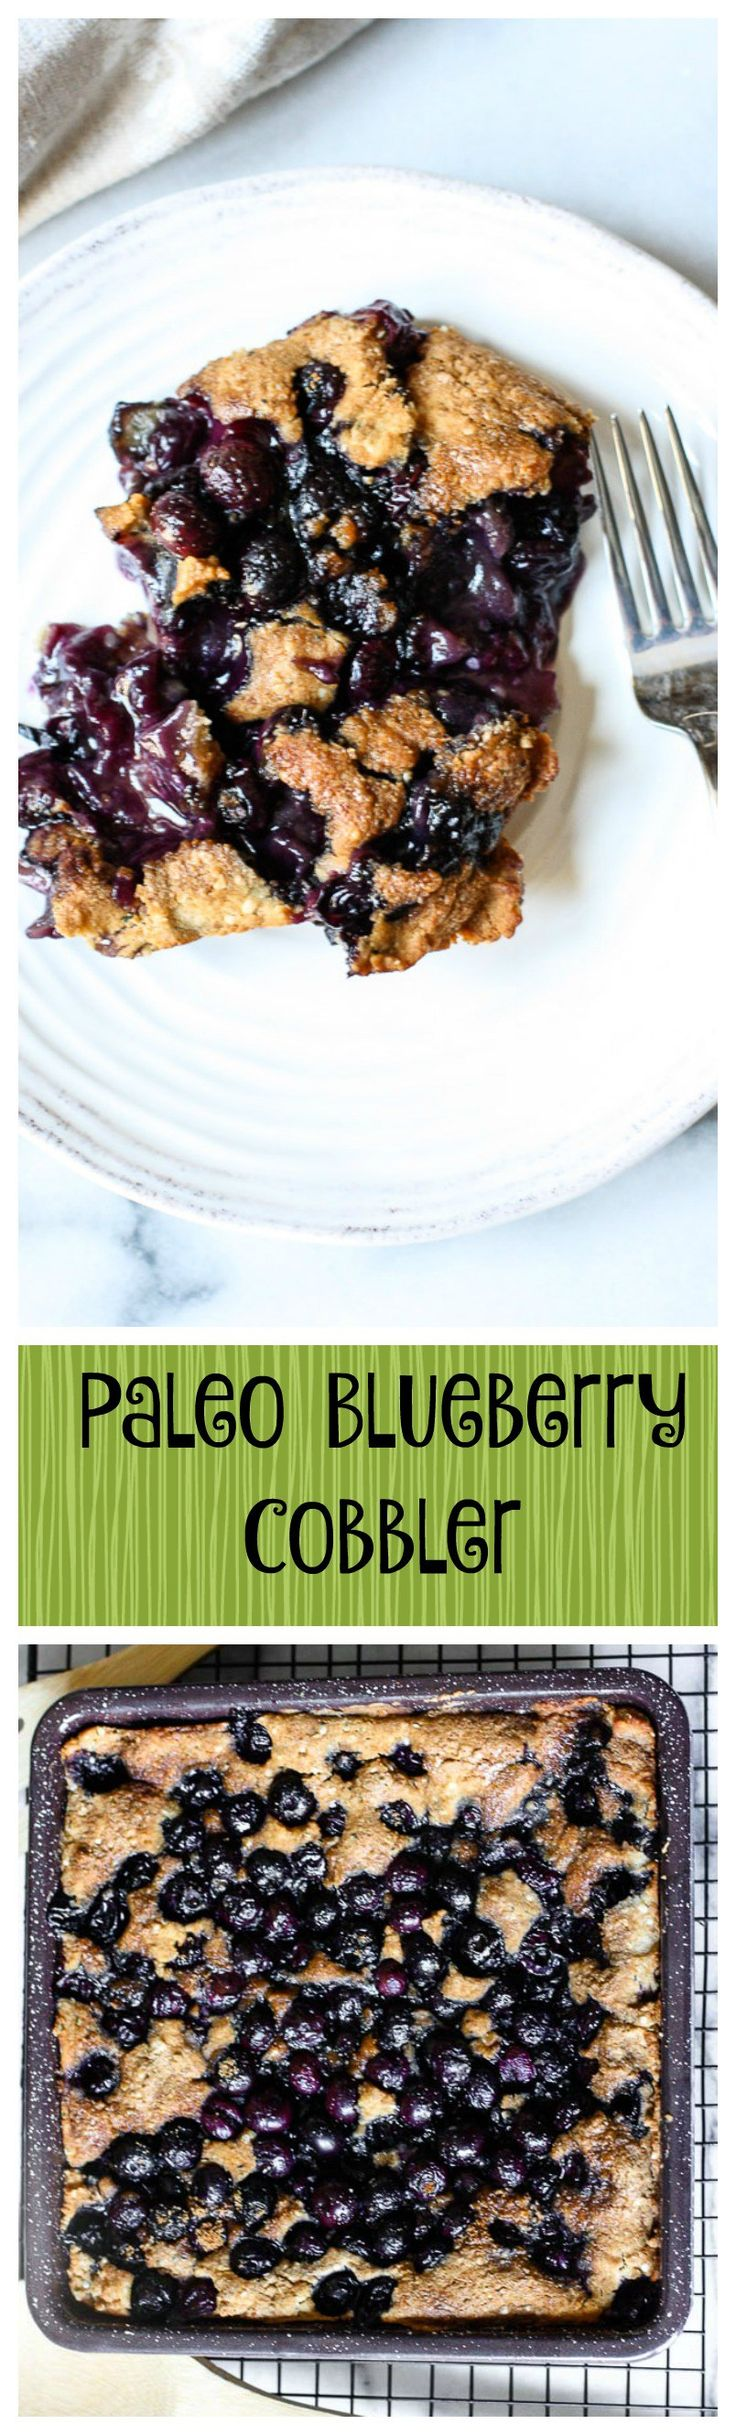 Paleo Blueberry Cobbler. This is it! The perfect simple healthy summer dessert recipe! This is just awesome!